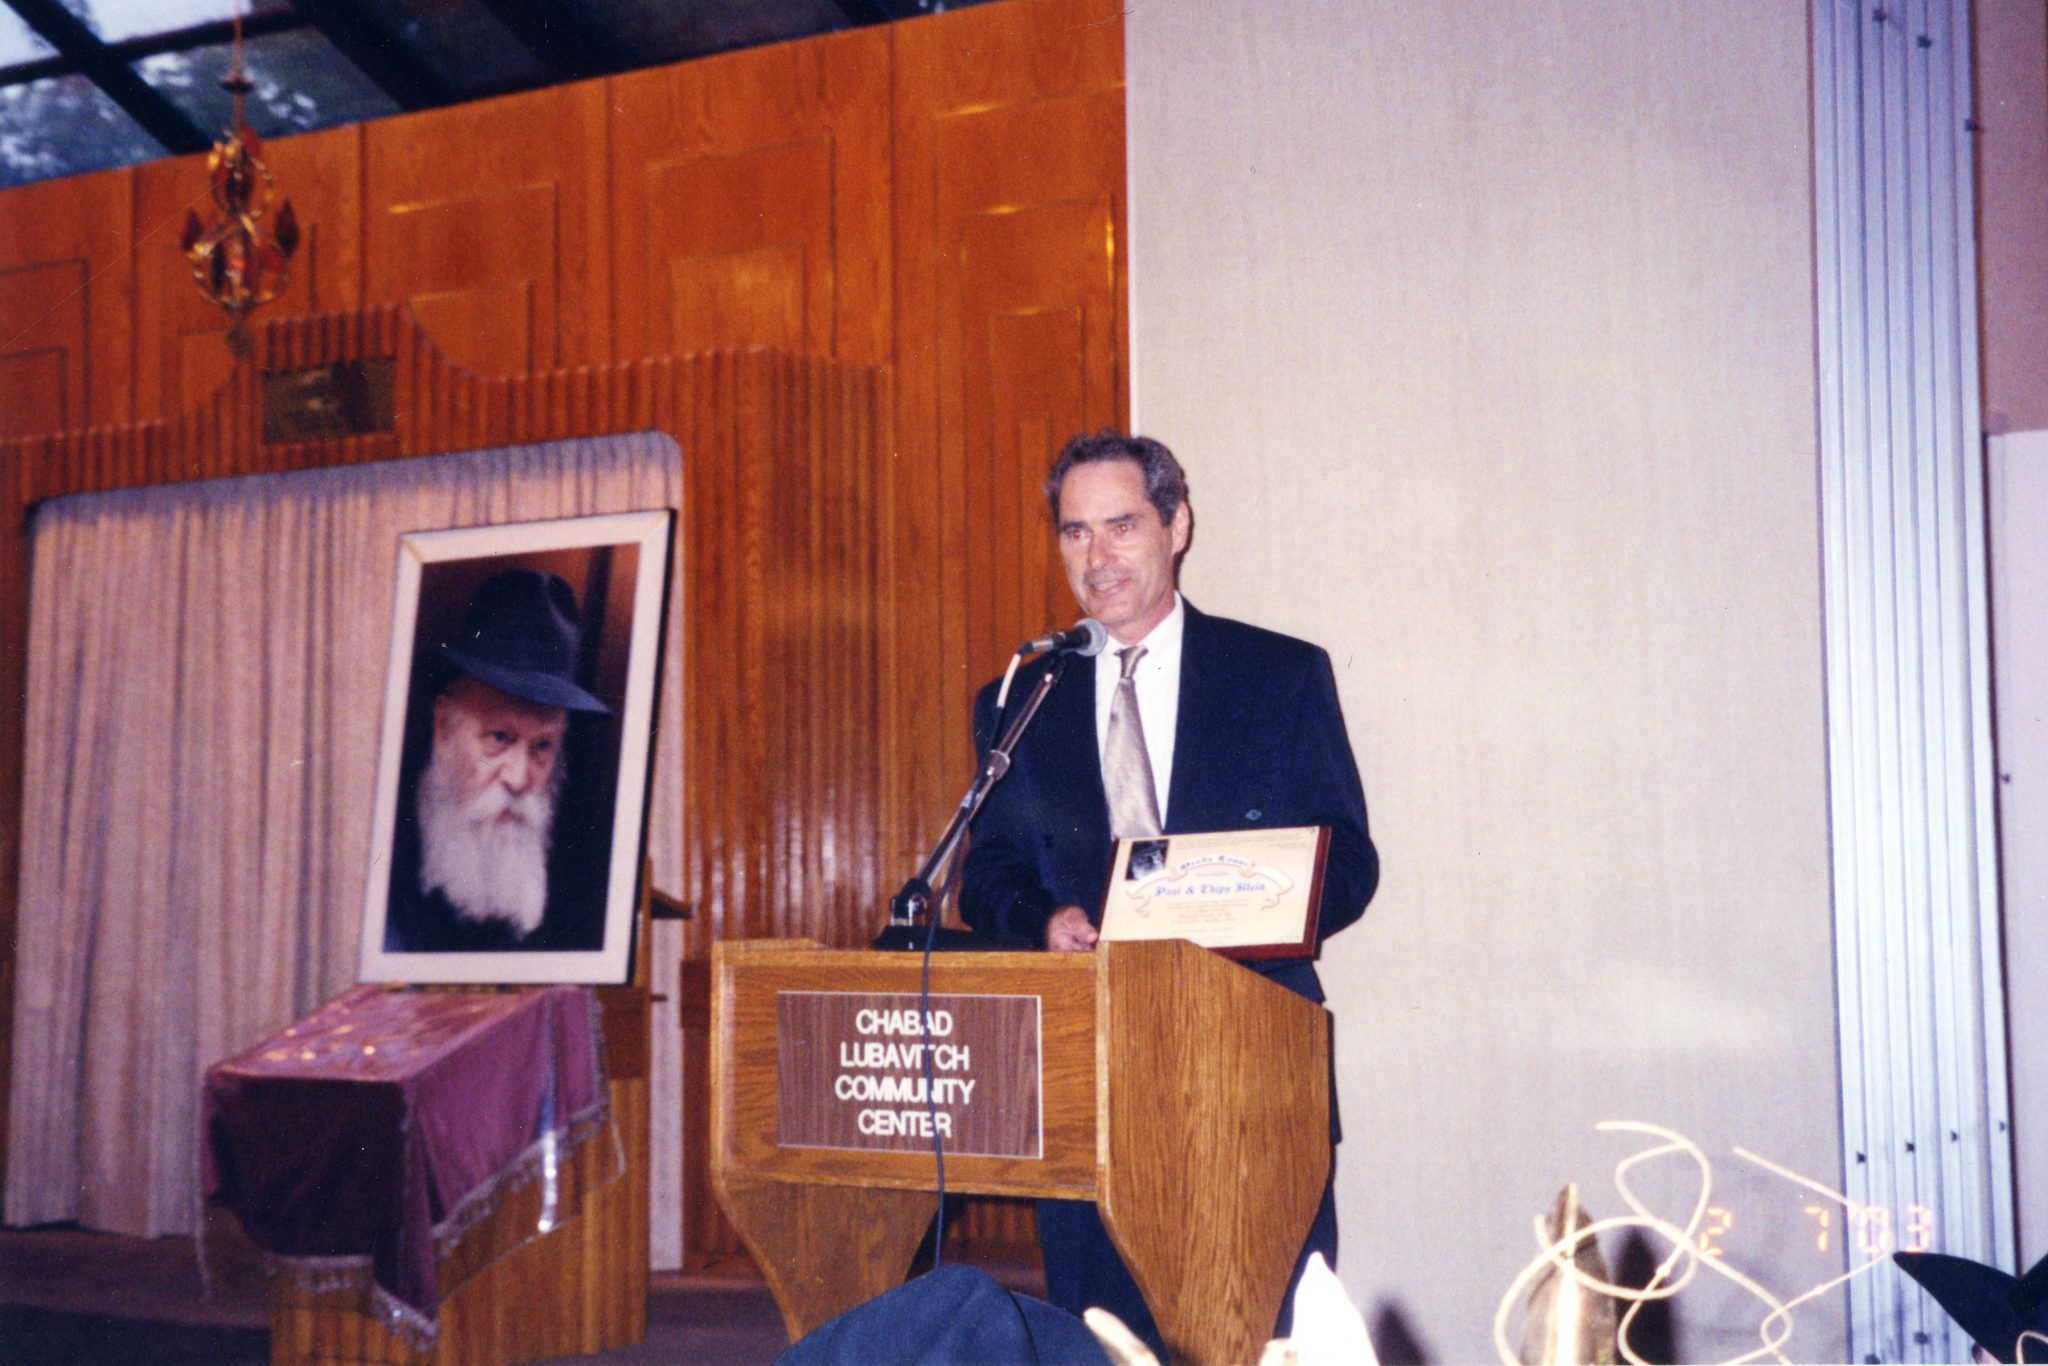 Paul receiving an award